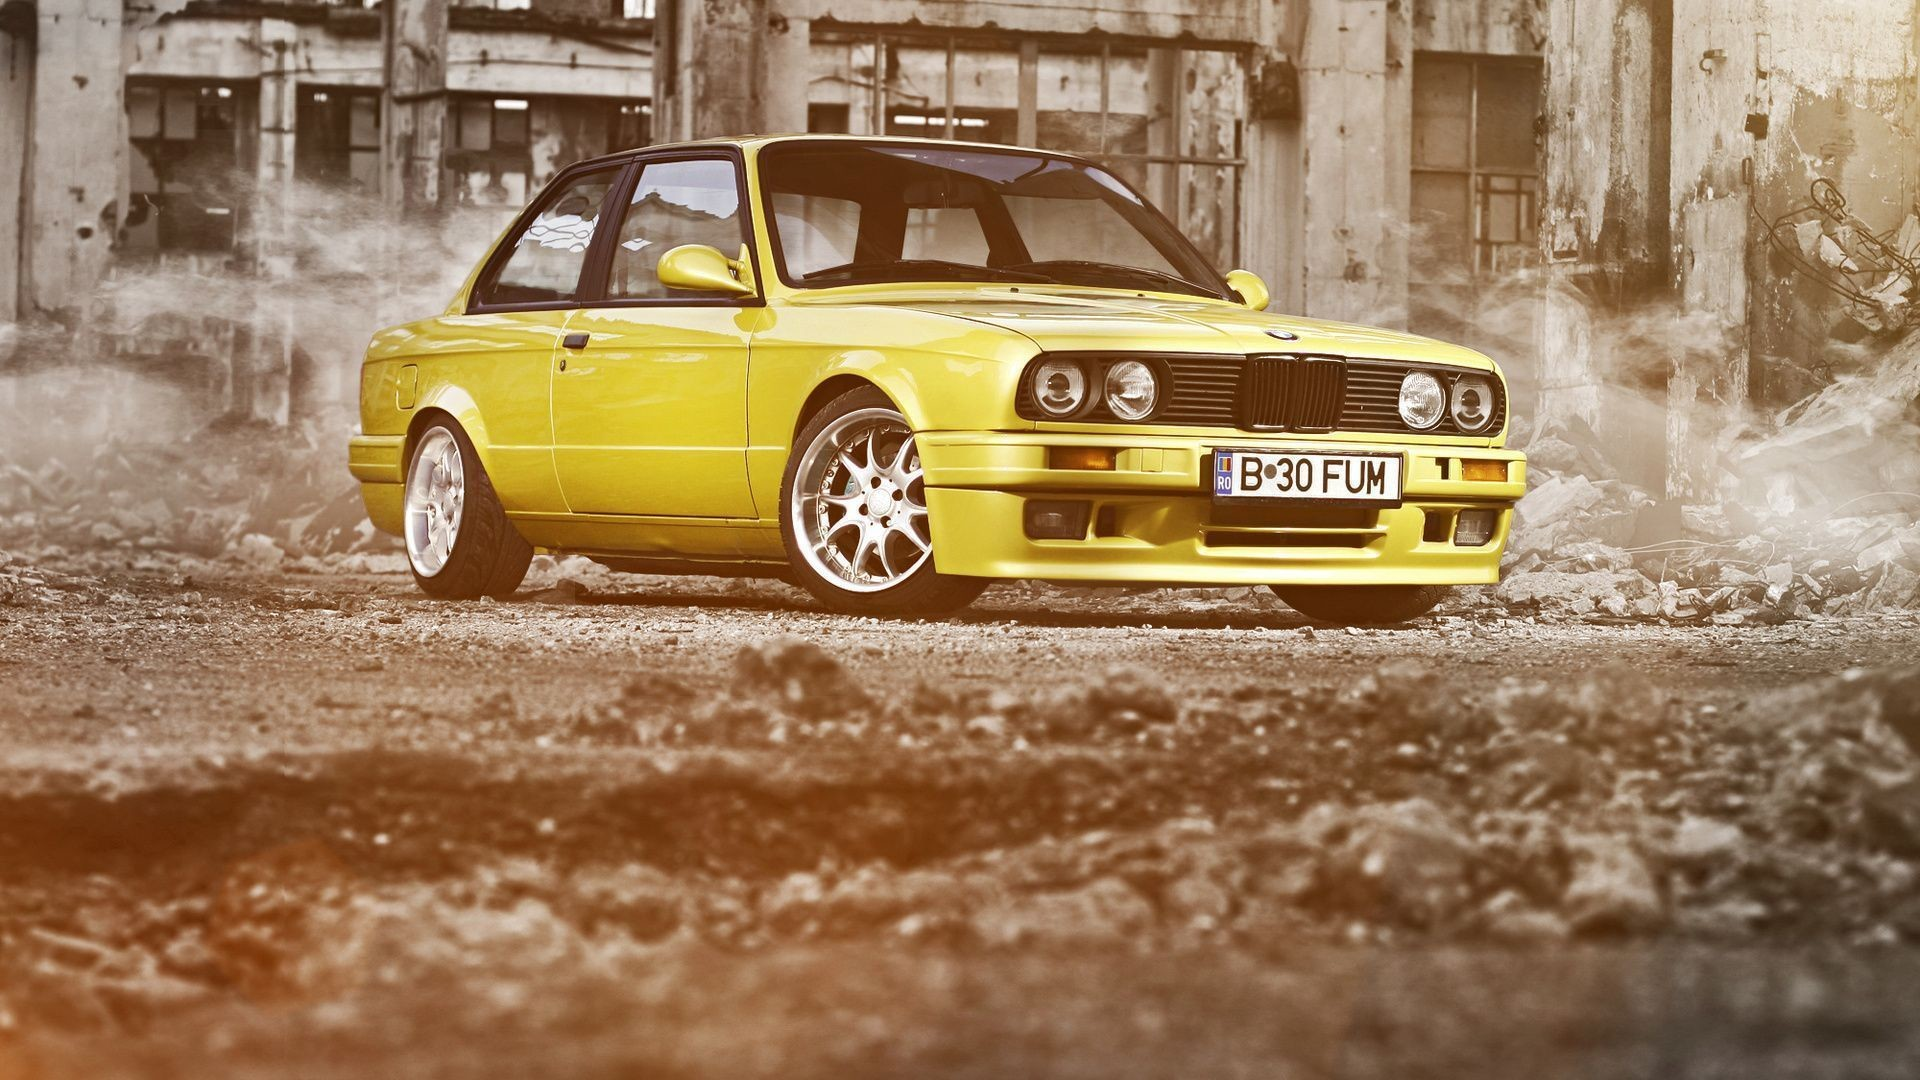 1920x1080 coupe ruins bmw yellow 3 series yellow e30